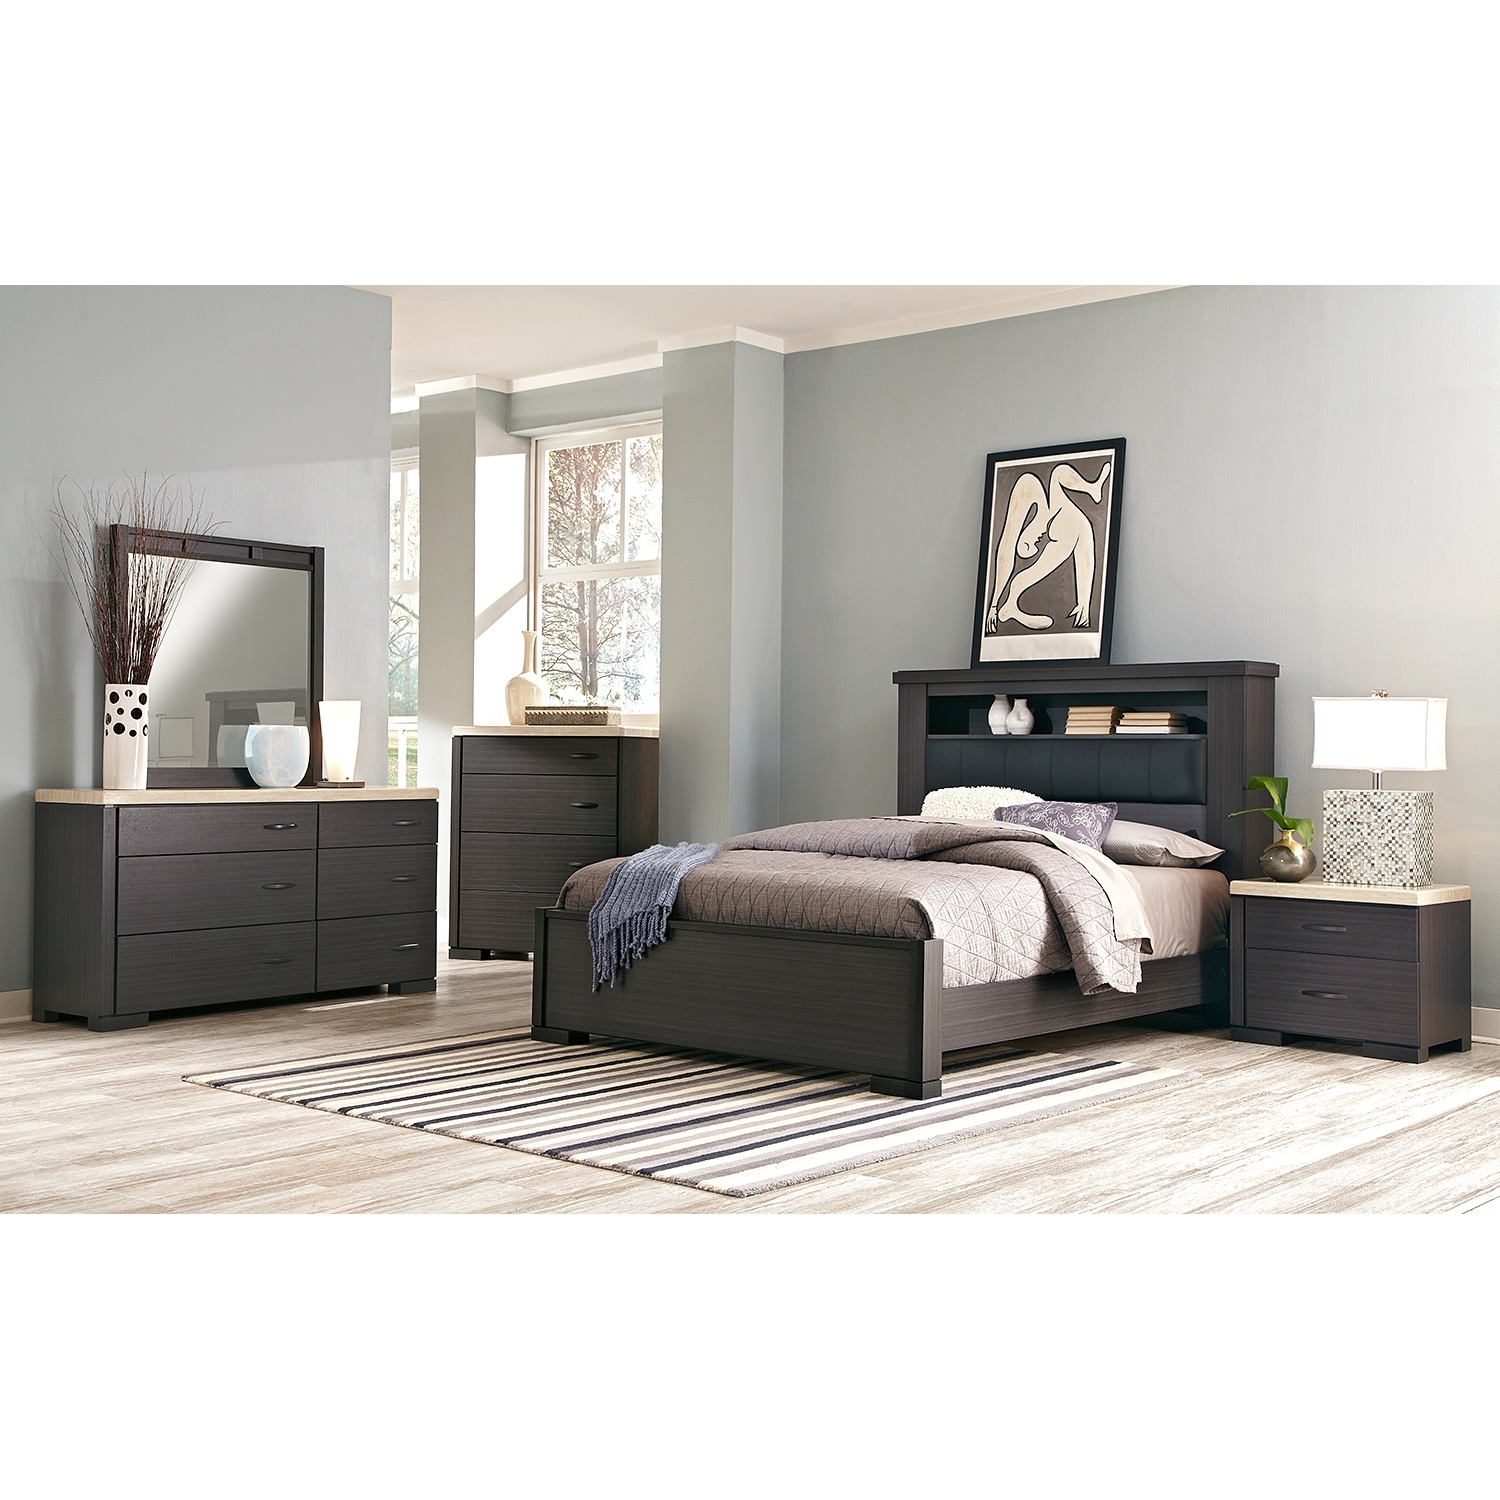 Bedroom Furniture   Camino 7 Piece King Bedroom Set   Charcoal And Ivory